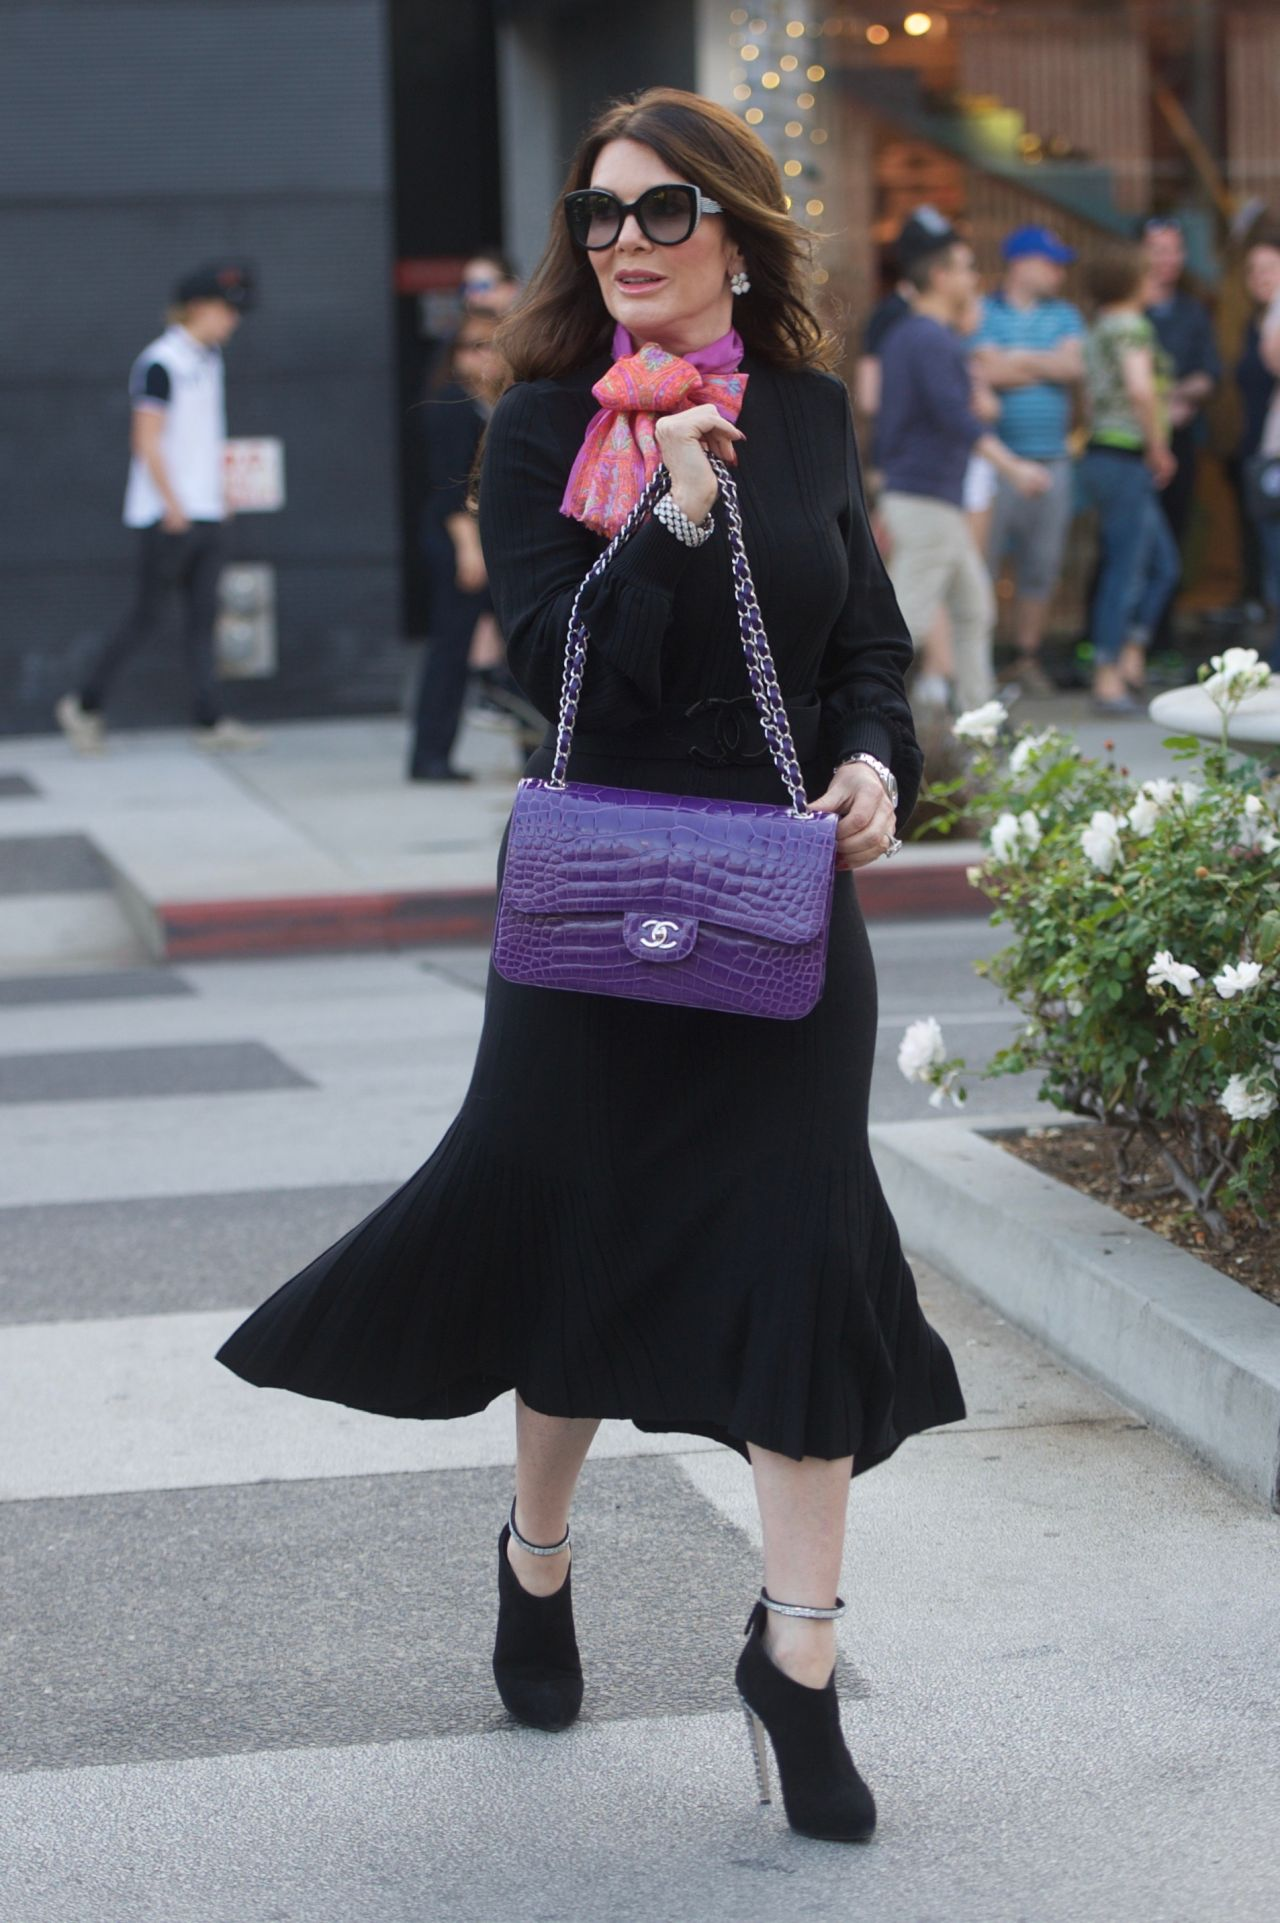 Lisa Vanderpump And Her Husband Ken Vanderpump Shopping On